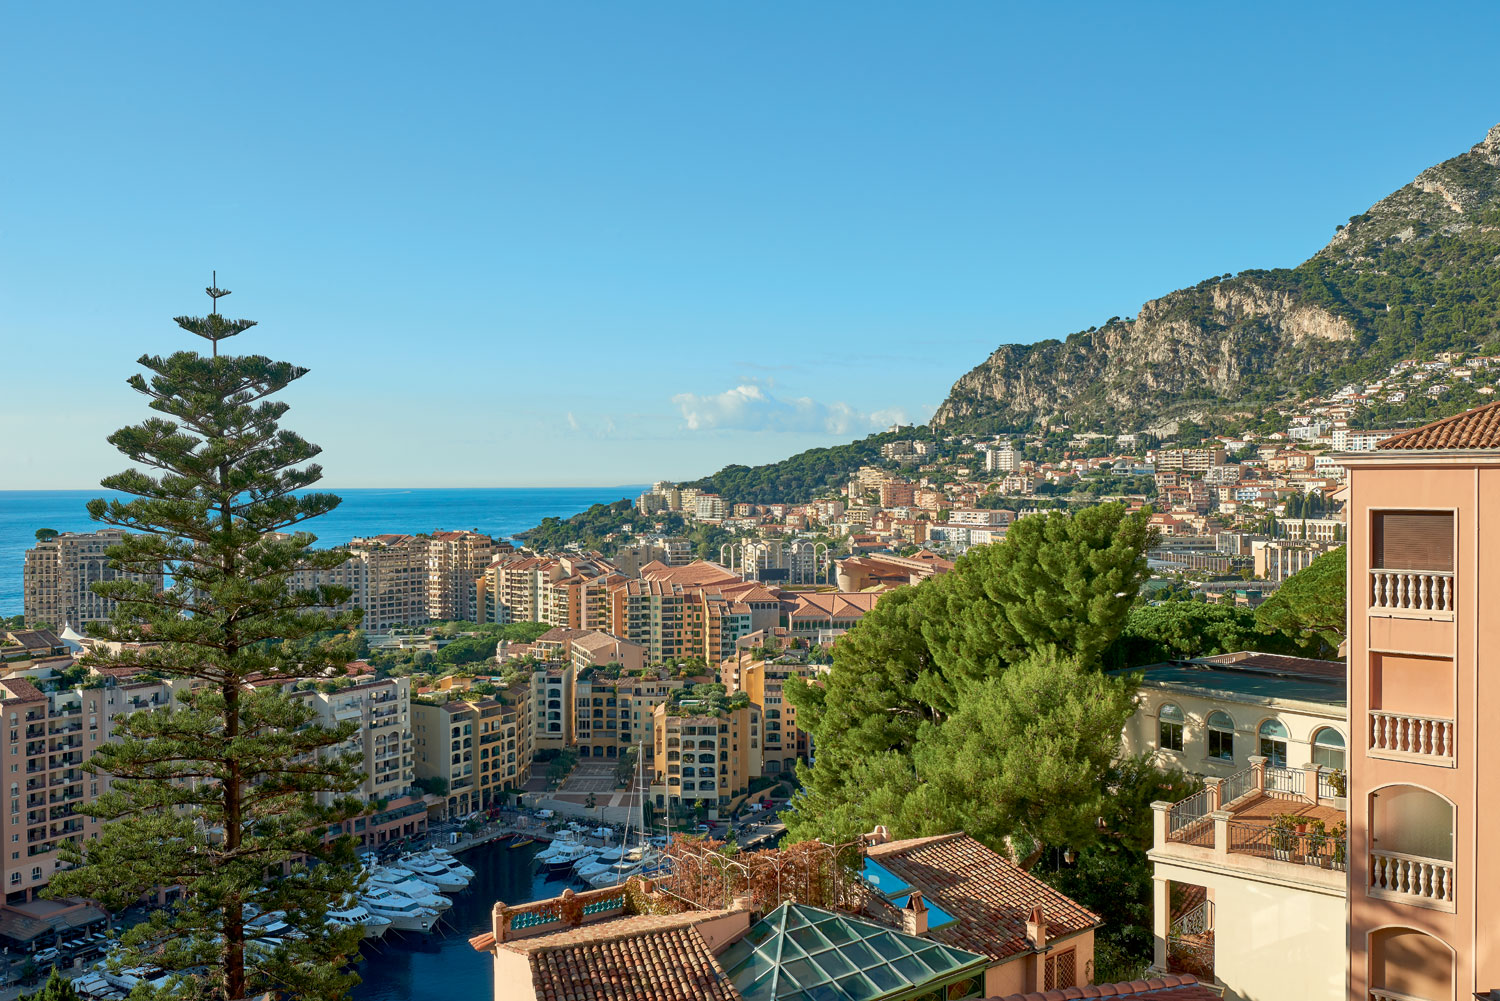 Monaco's azure waters combine with the warm, sunshine tones of the Old Town architecture to create rich panoramas—all of which can be enjoyed from Villa San Martin's wraparound balcony